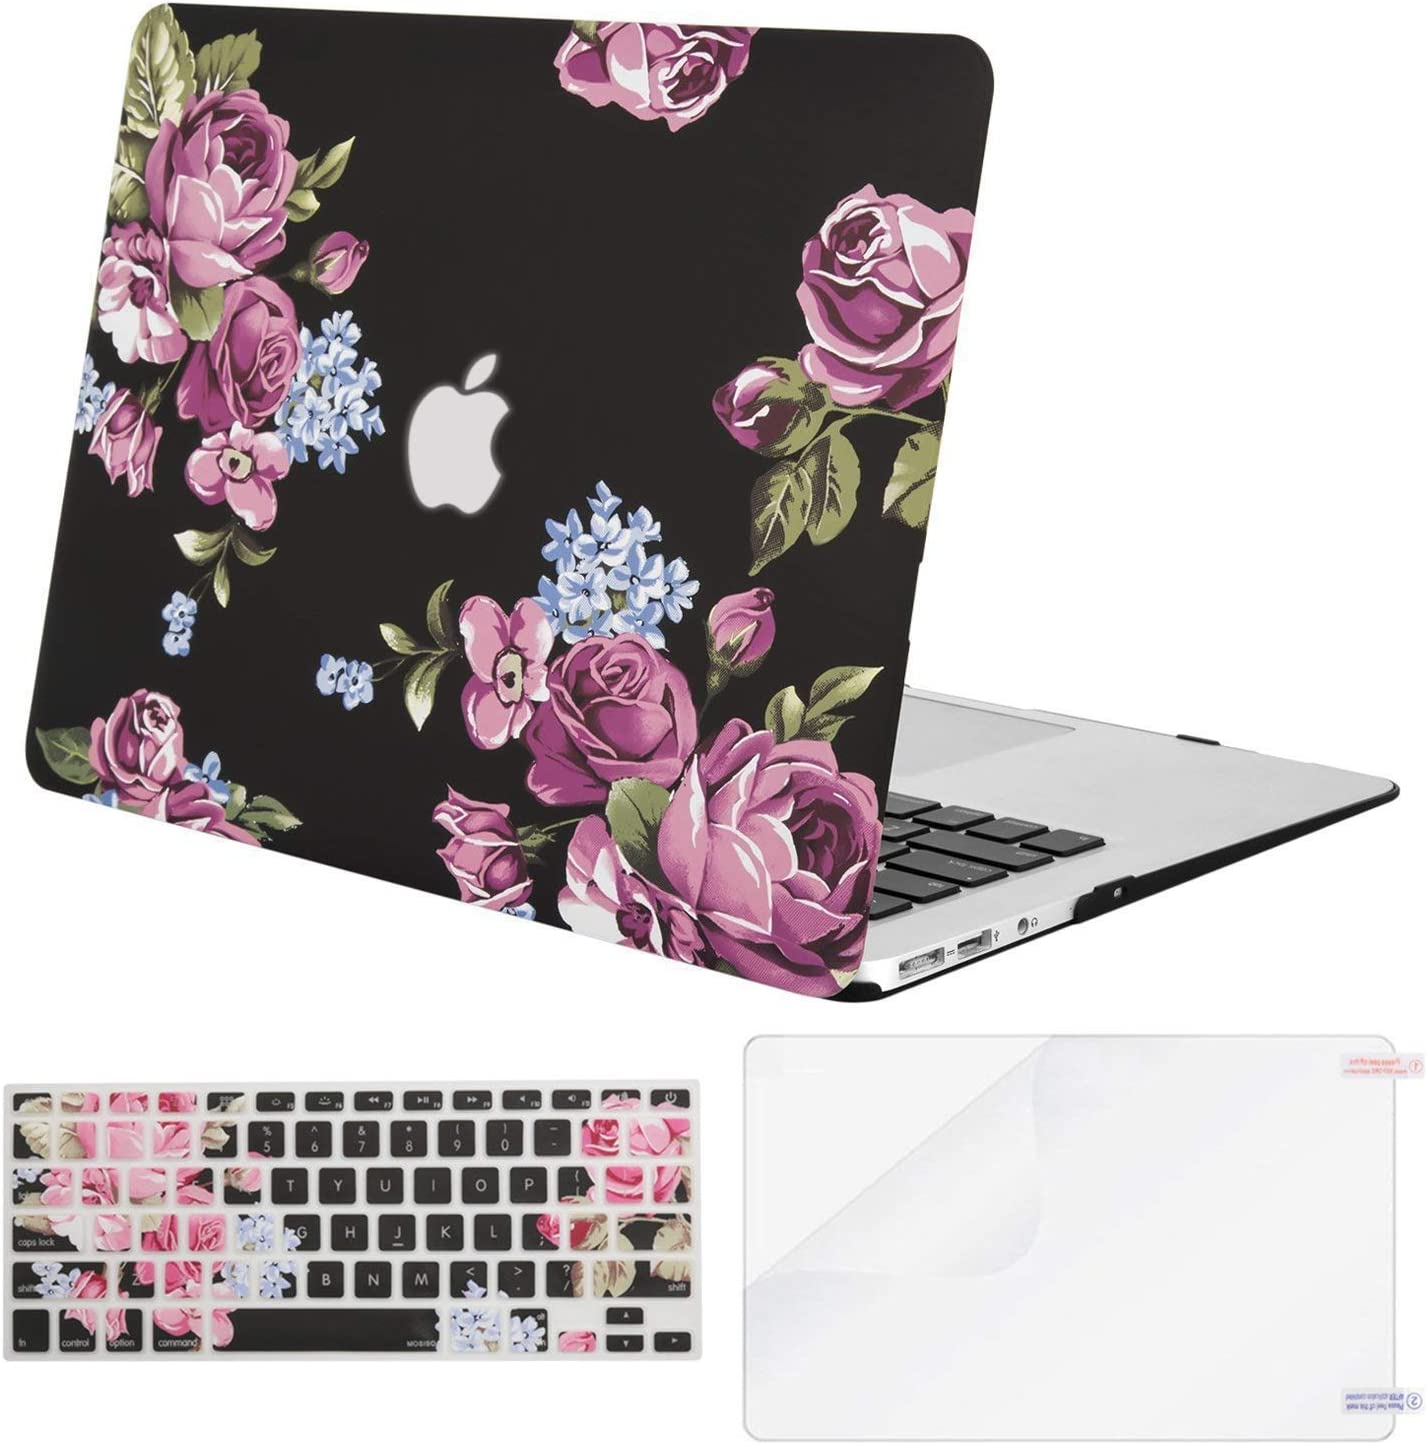 MOSISO MacBook Pro 15 inch Case (Model: A1398, 2015 - end 2012 Release), Plastic Hard Shell & Keyboard Cover & Screen Protector Compatible with Older Version MacBook Pro Retina 15 inch, Purple Peony